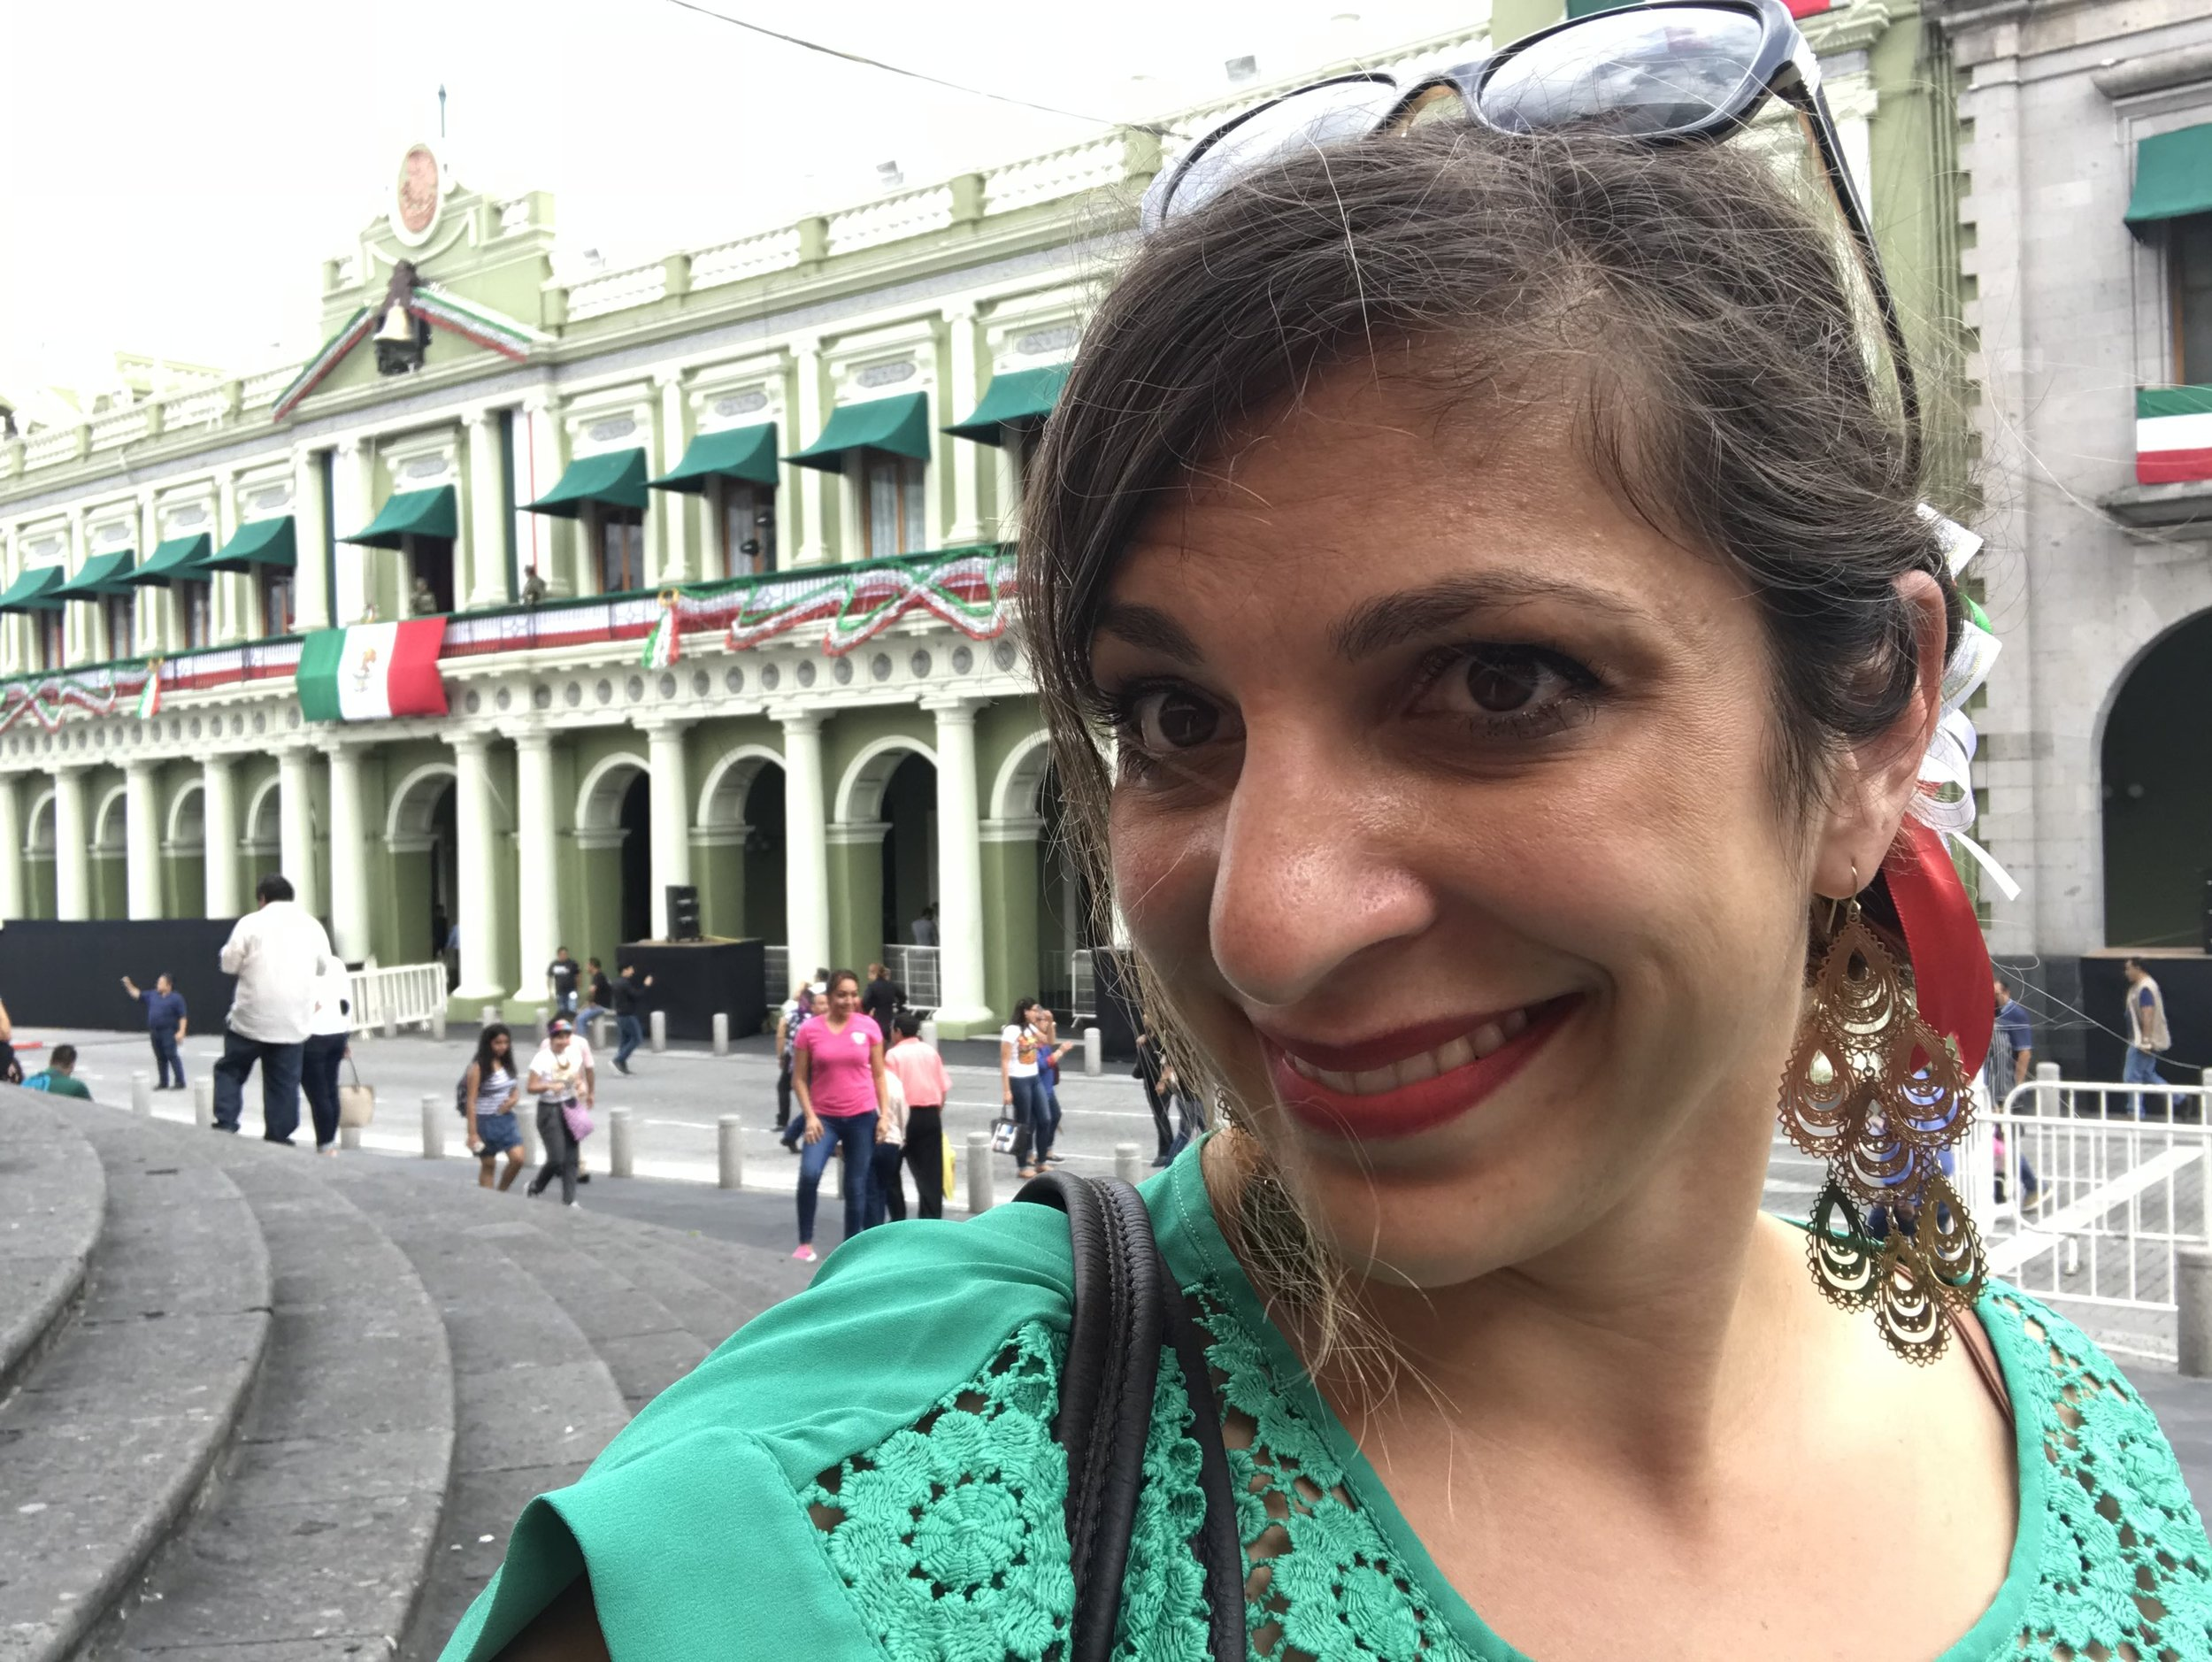 Me in front of the city hall before El Grito. Much like in the US some Mexicans dress in the red-white-green colors of the flag, while many do not. I went for it, because ¡Viva México! (Though I ironically felt like more of a gringa walking through the streets than on any other day since my arrival.)